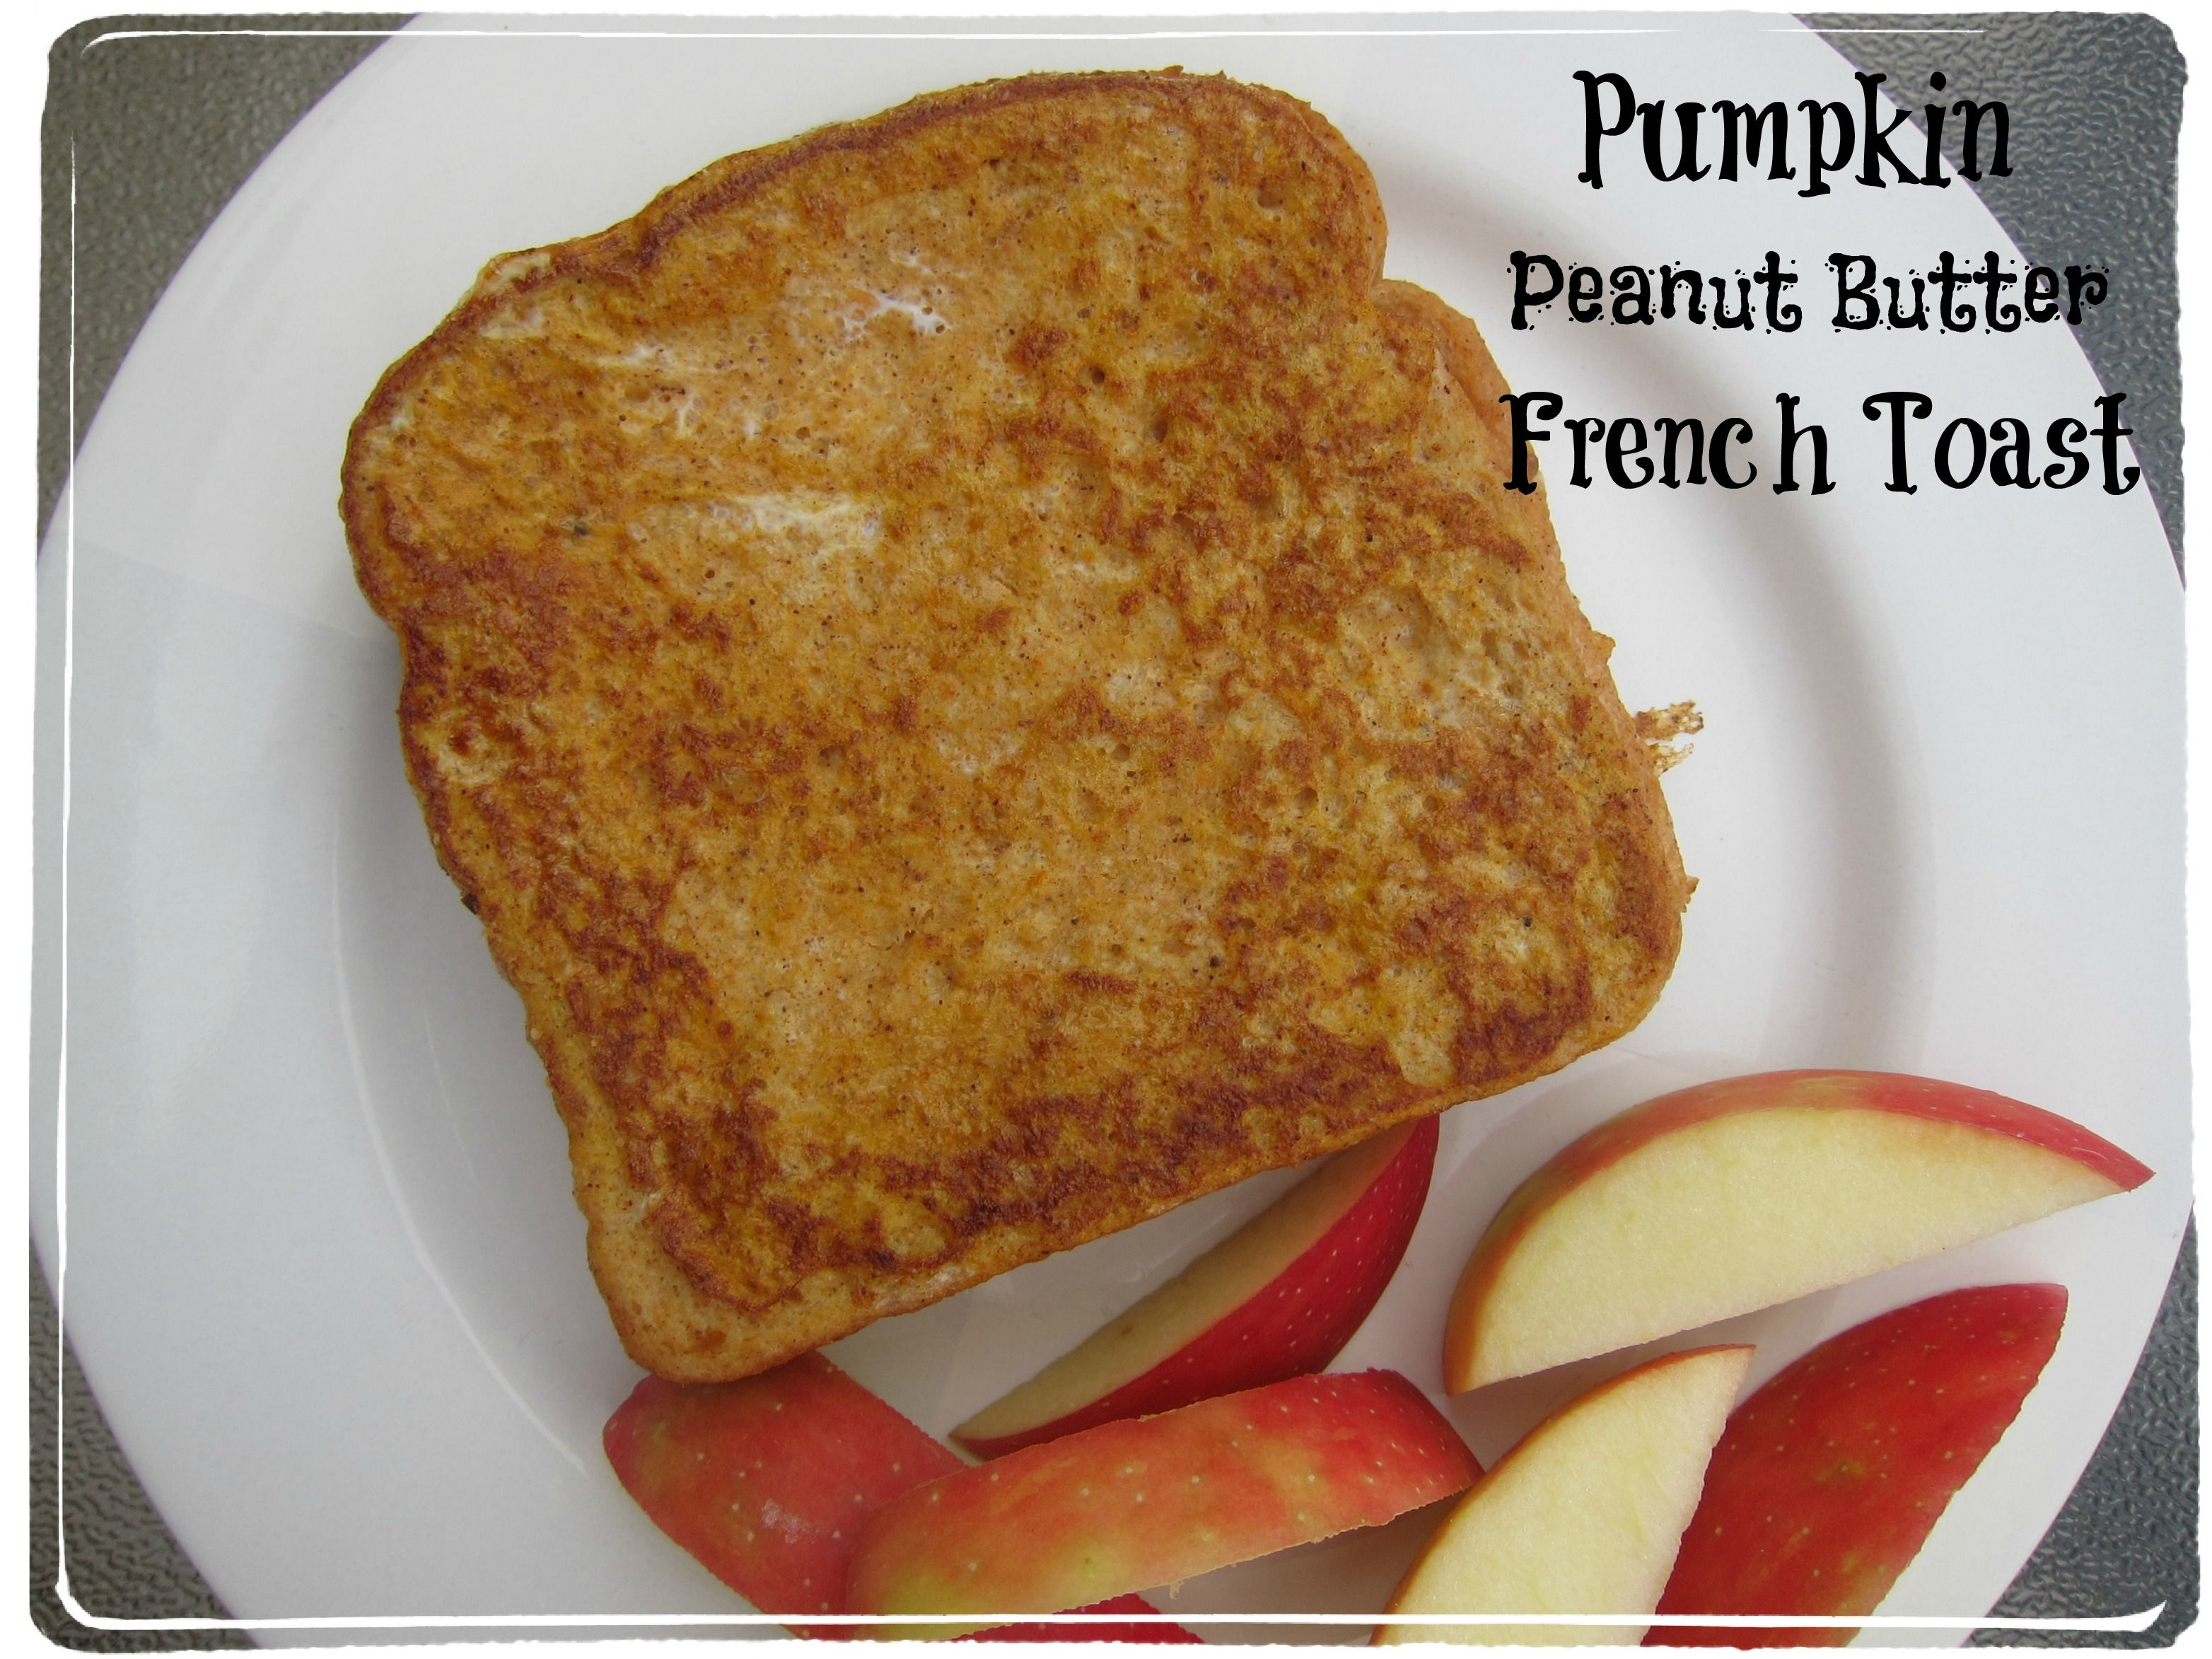 Pumpkin Peanut Butter French Toast